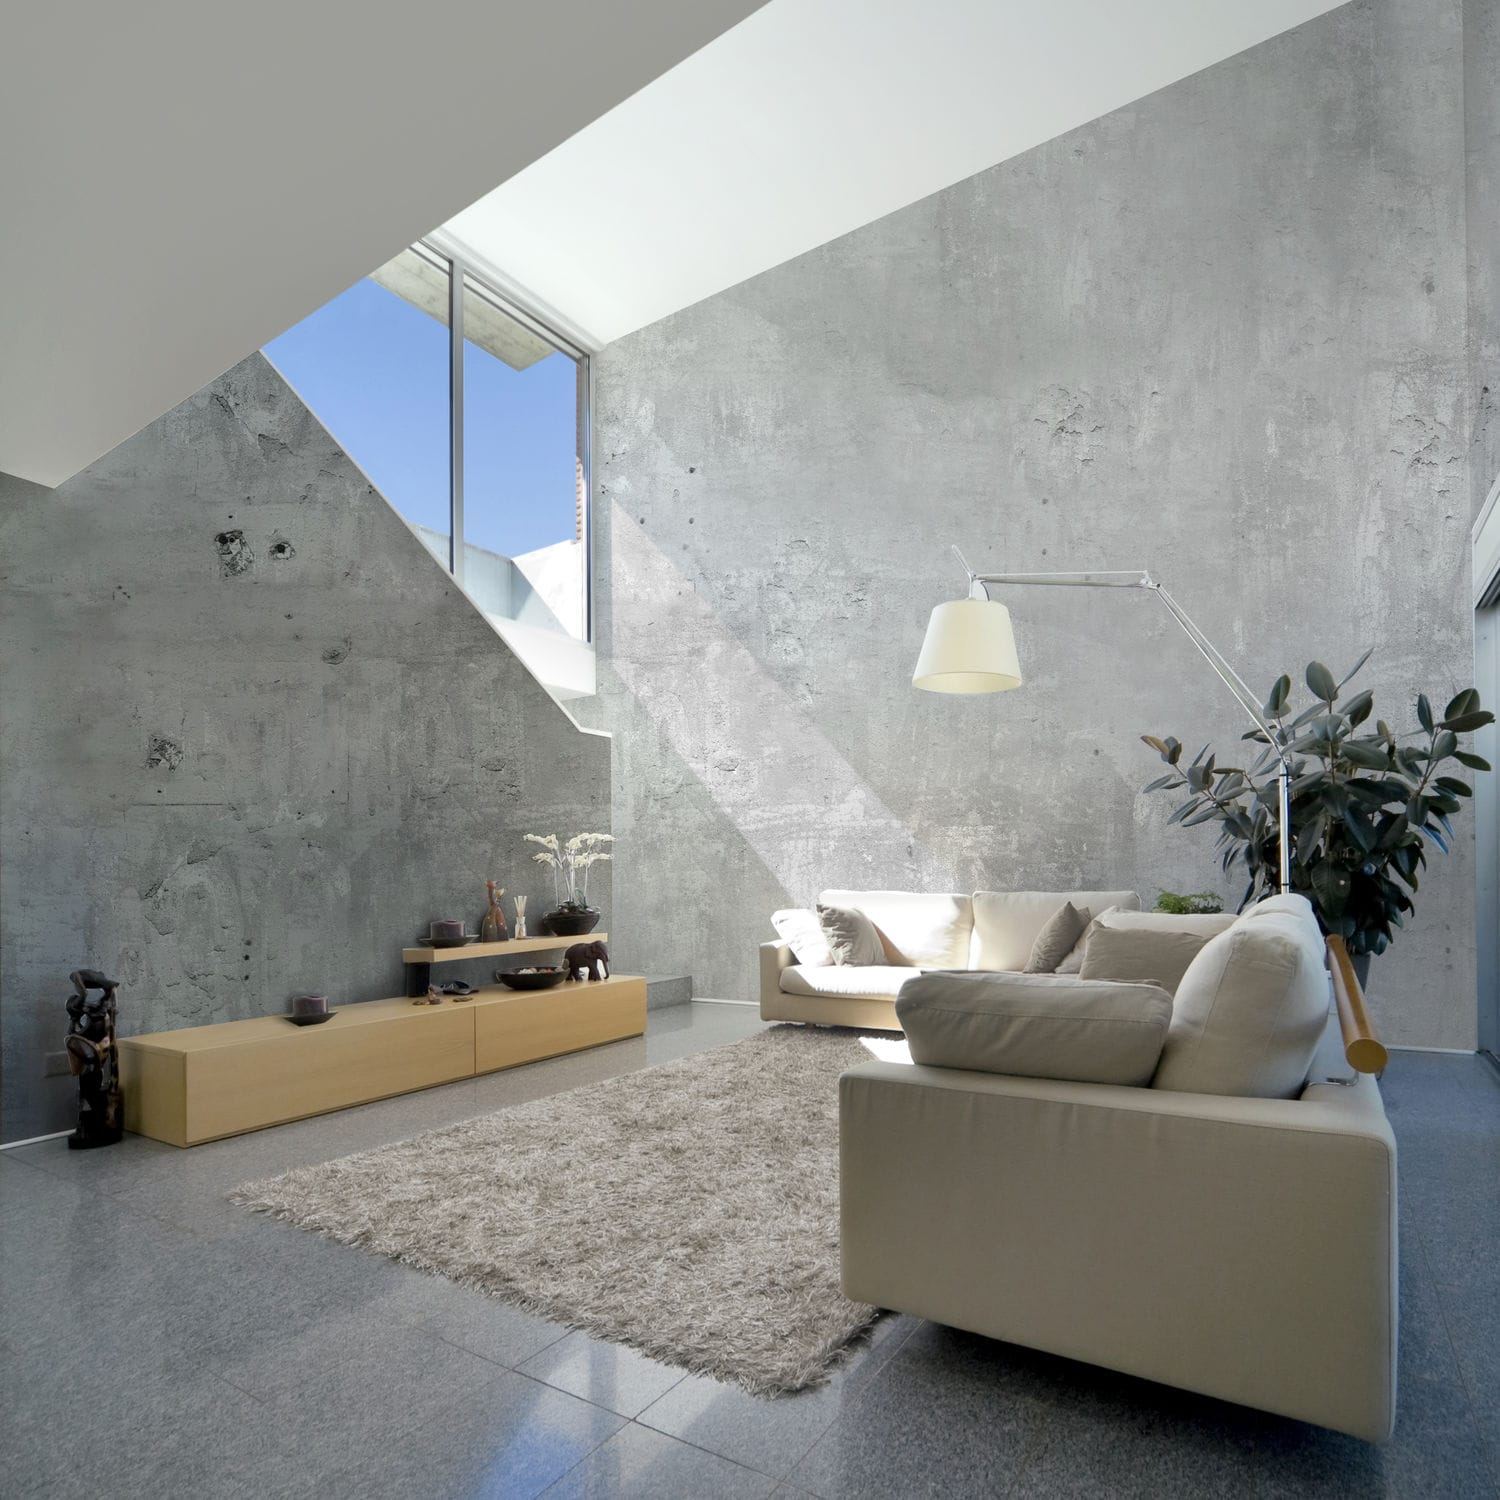 Industrial Style Wallpaper / Urban Motif / Concrete Look / Gray   BM186